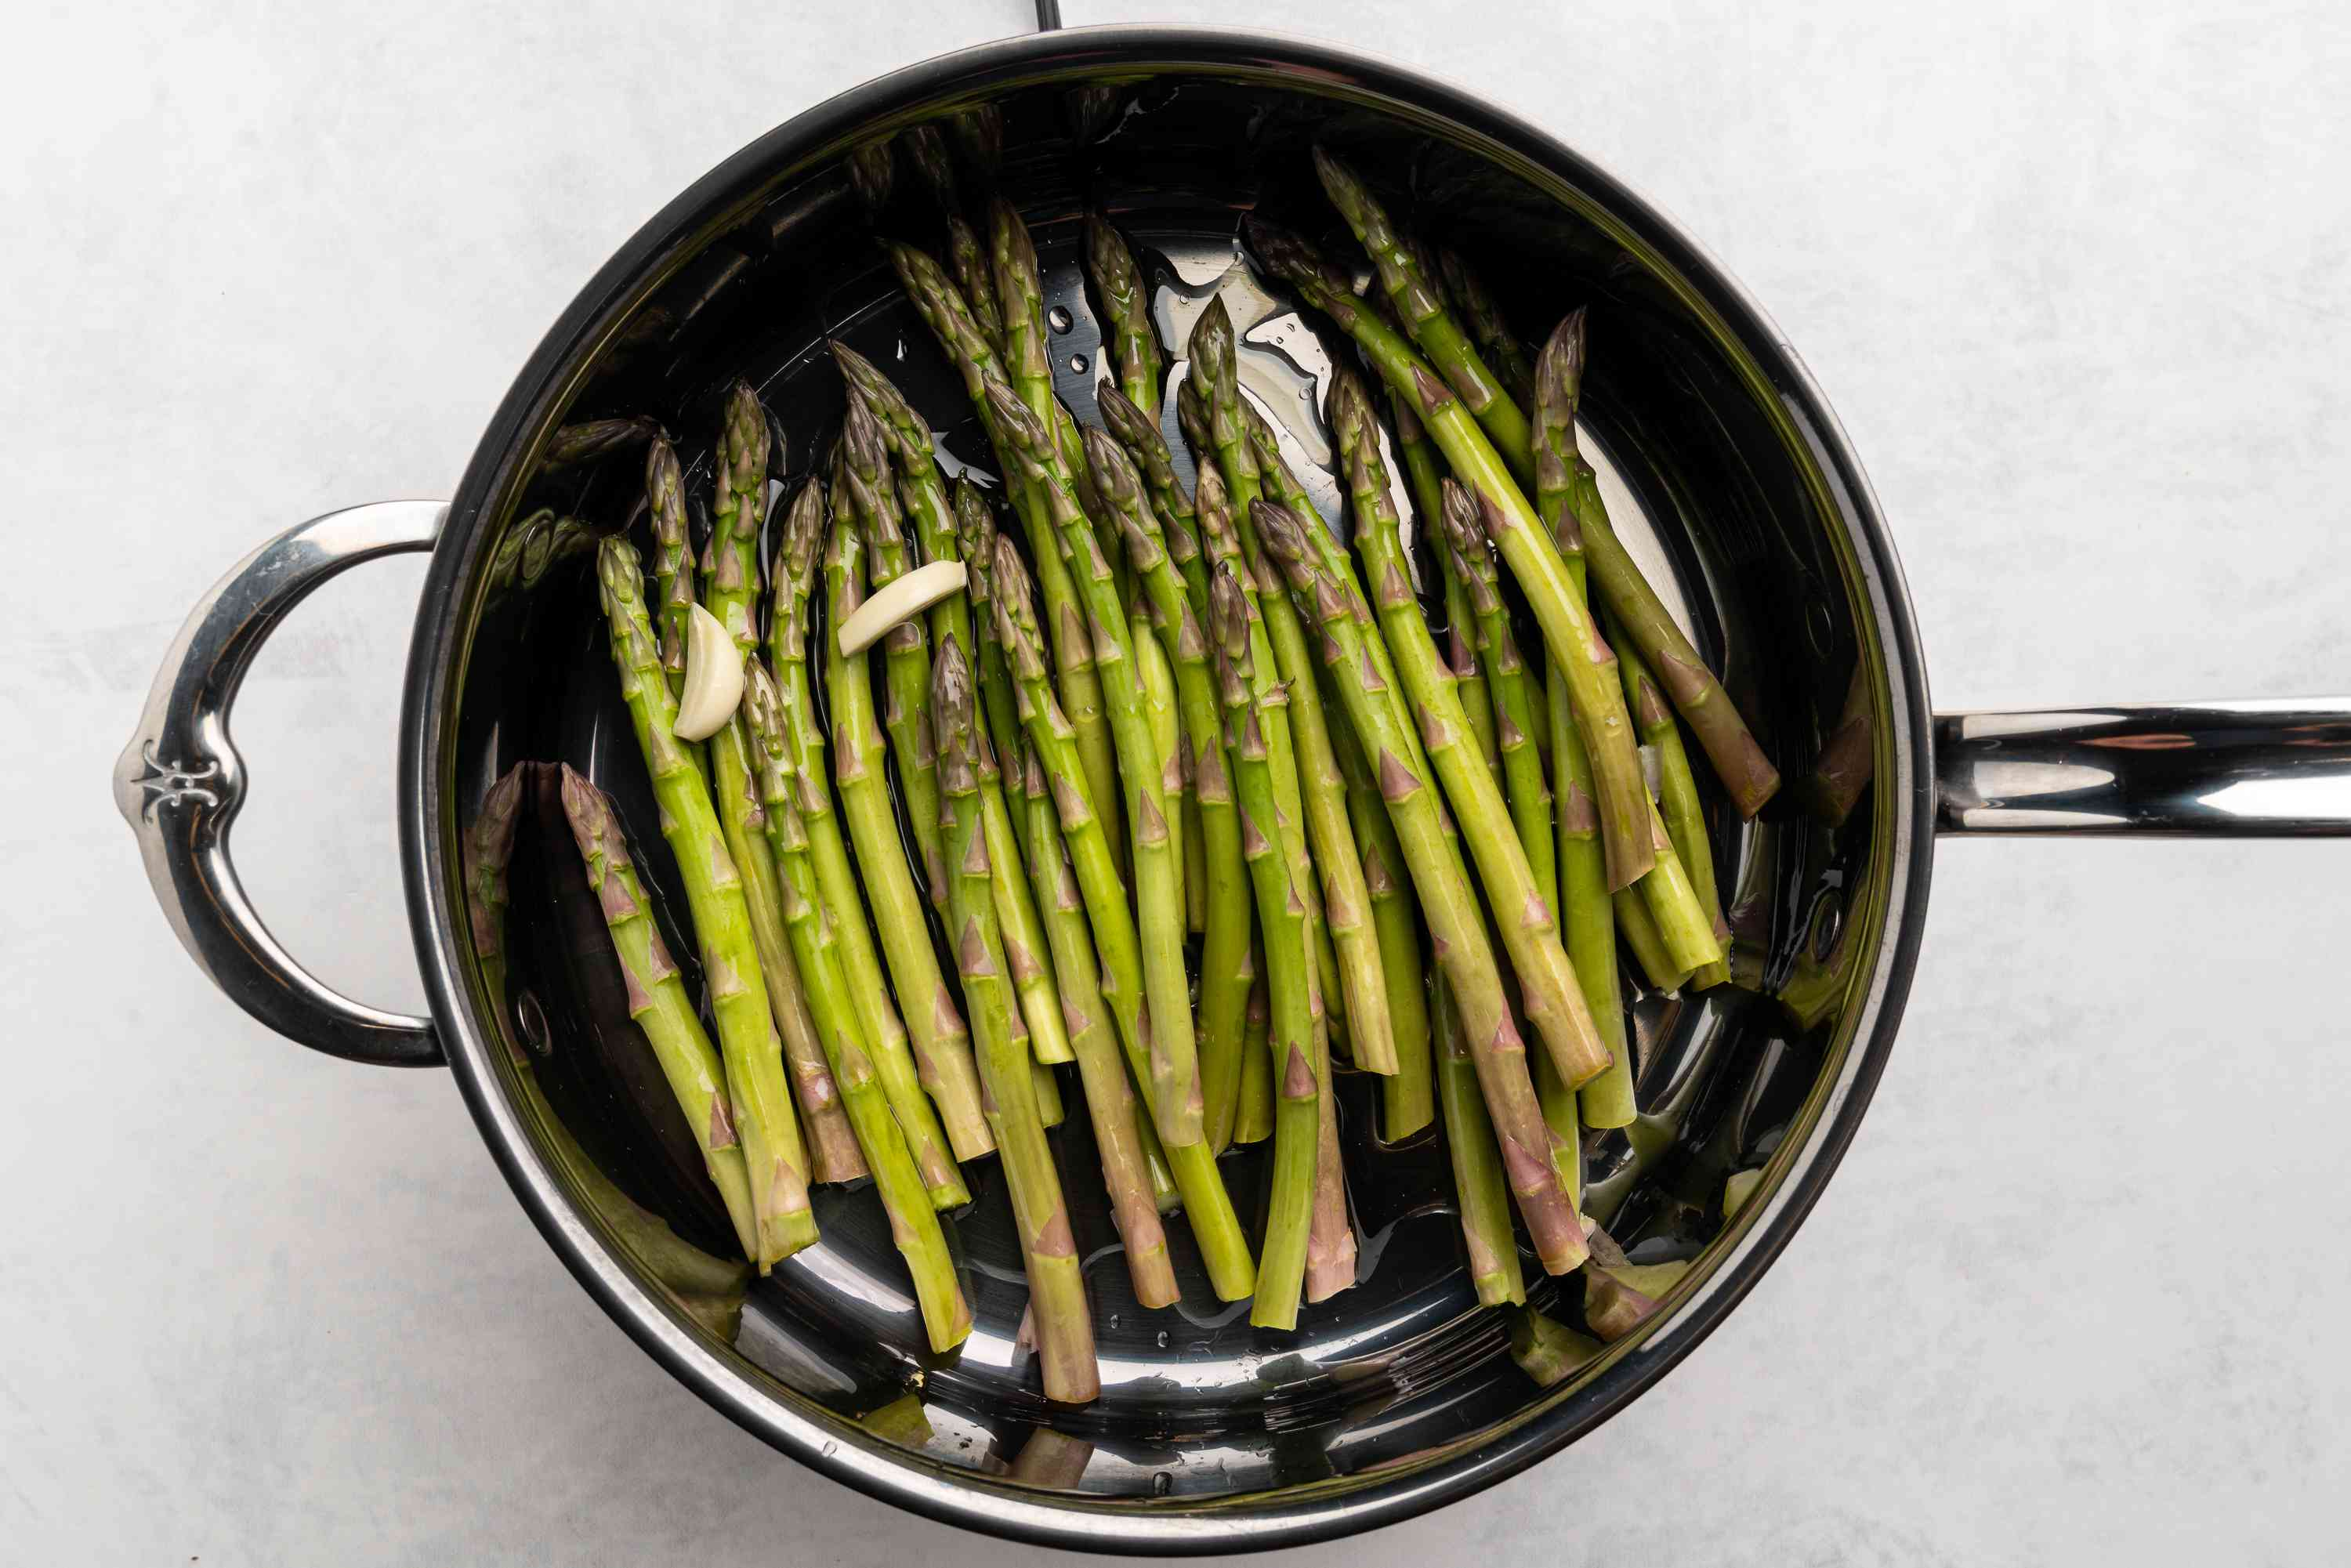 asparagus, olive oil, water, and garlic to a large sauté pan